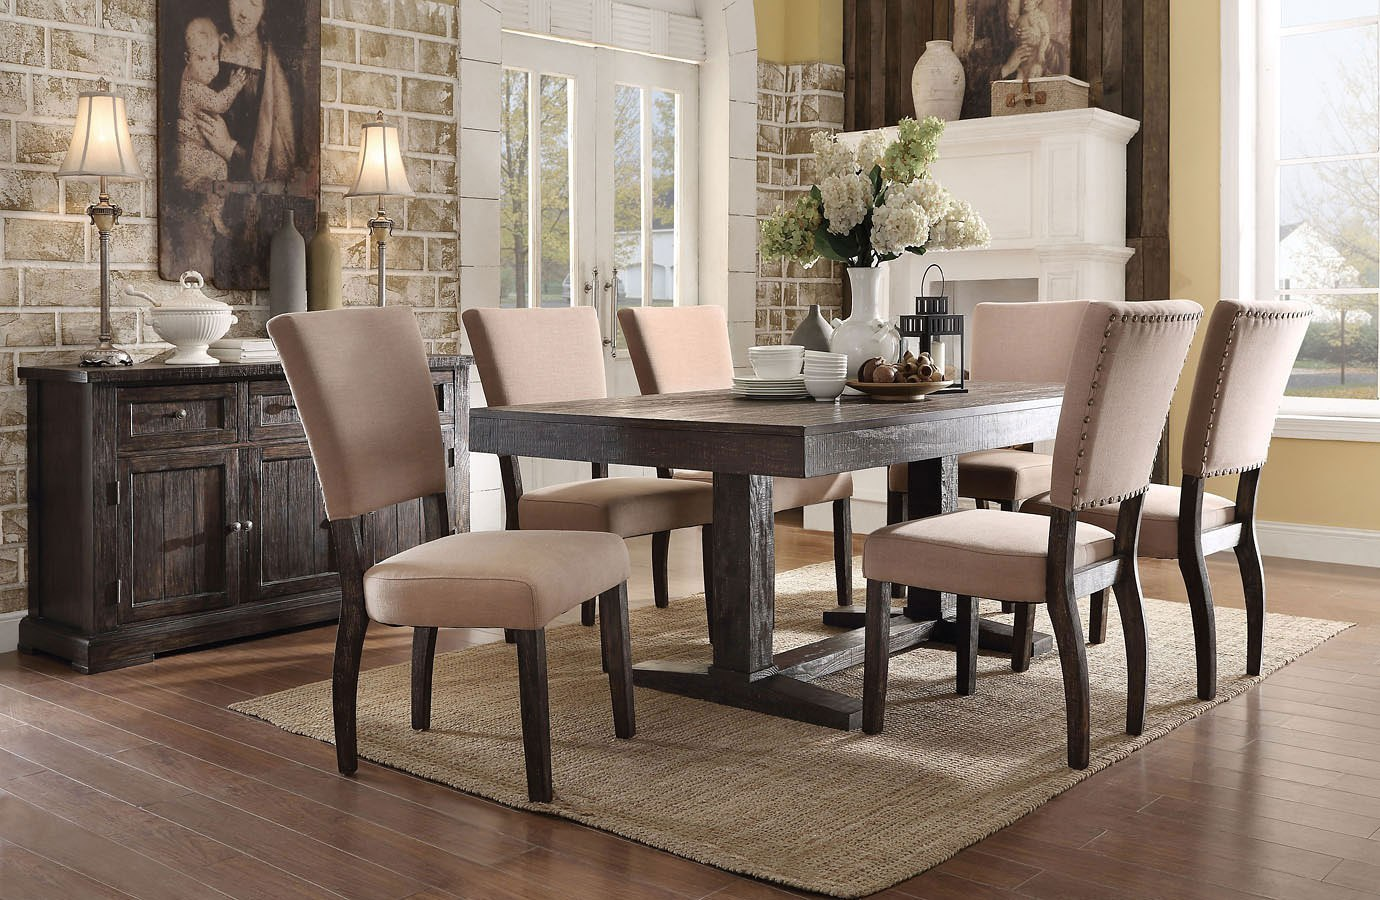 Dining Room Set With Extension eliana extension dining room set - dining room and kitchen furniture